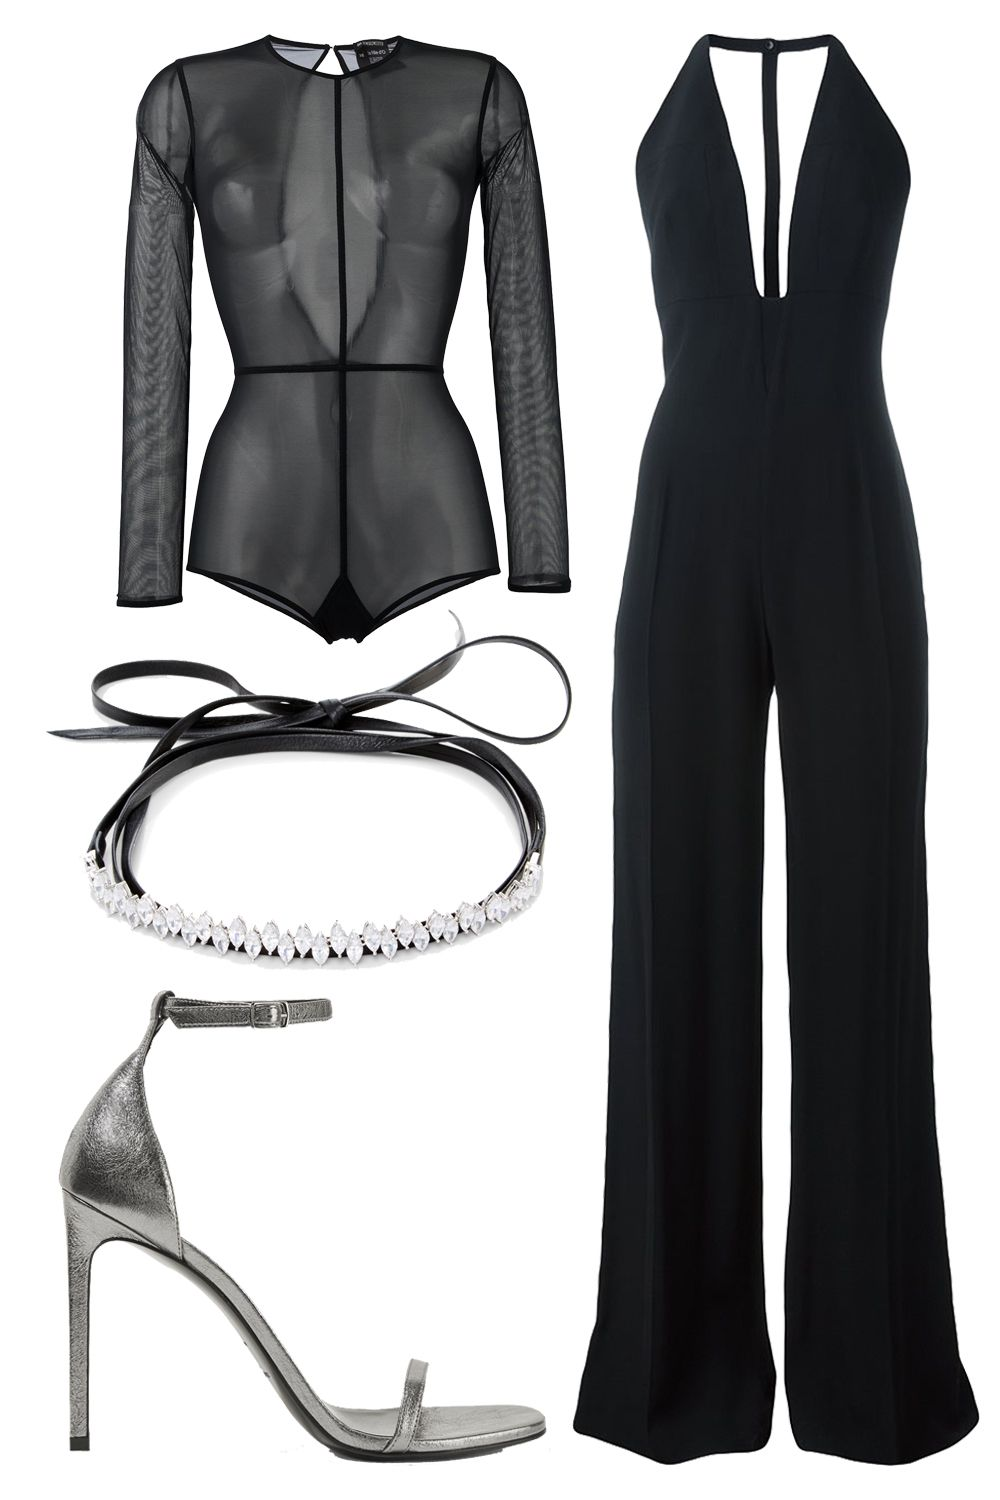 winter wedding guest outfits winter wedding guest dresses What to Wear to a Winter Wedding Best Wedding Guest Dresses for Winter